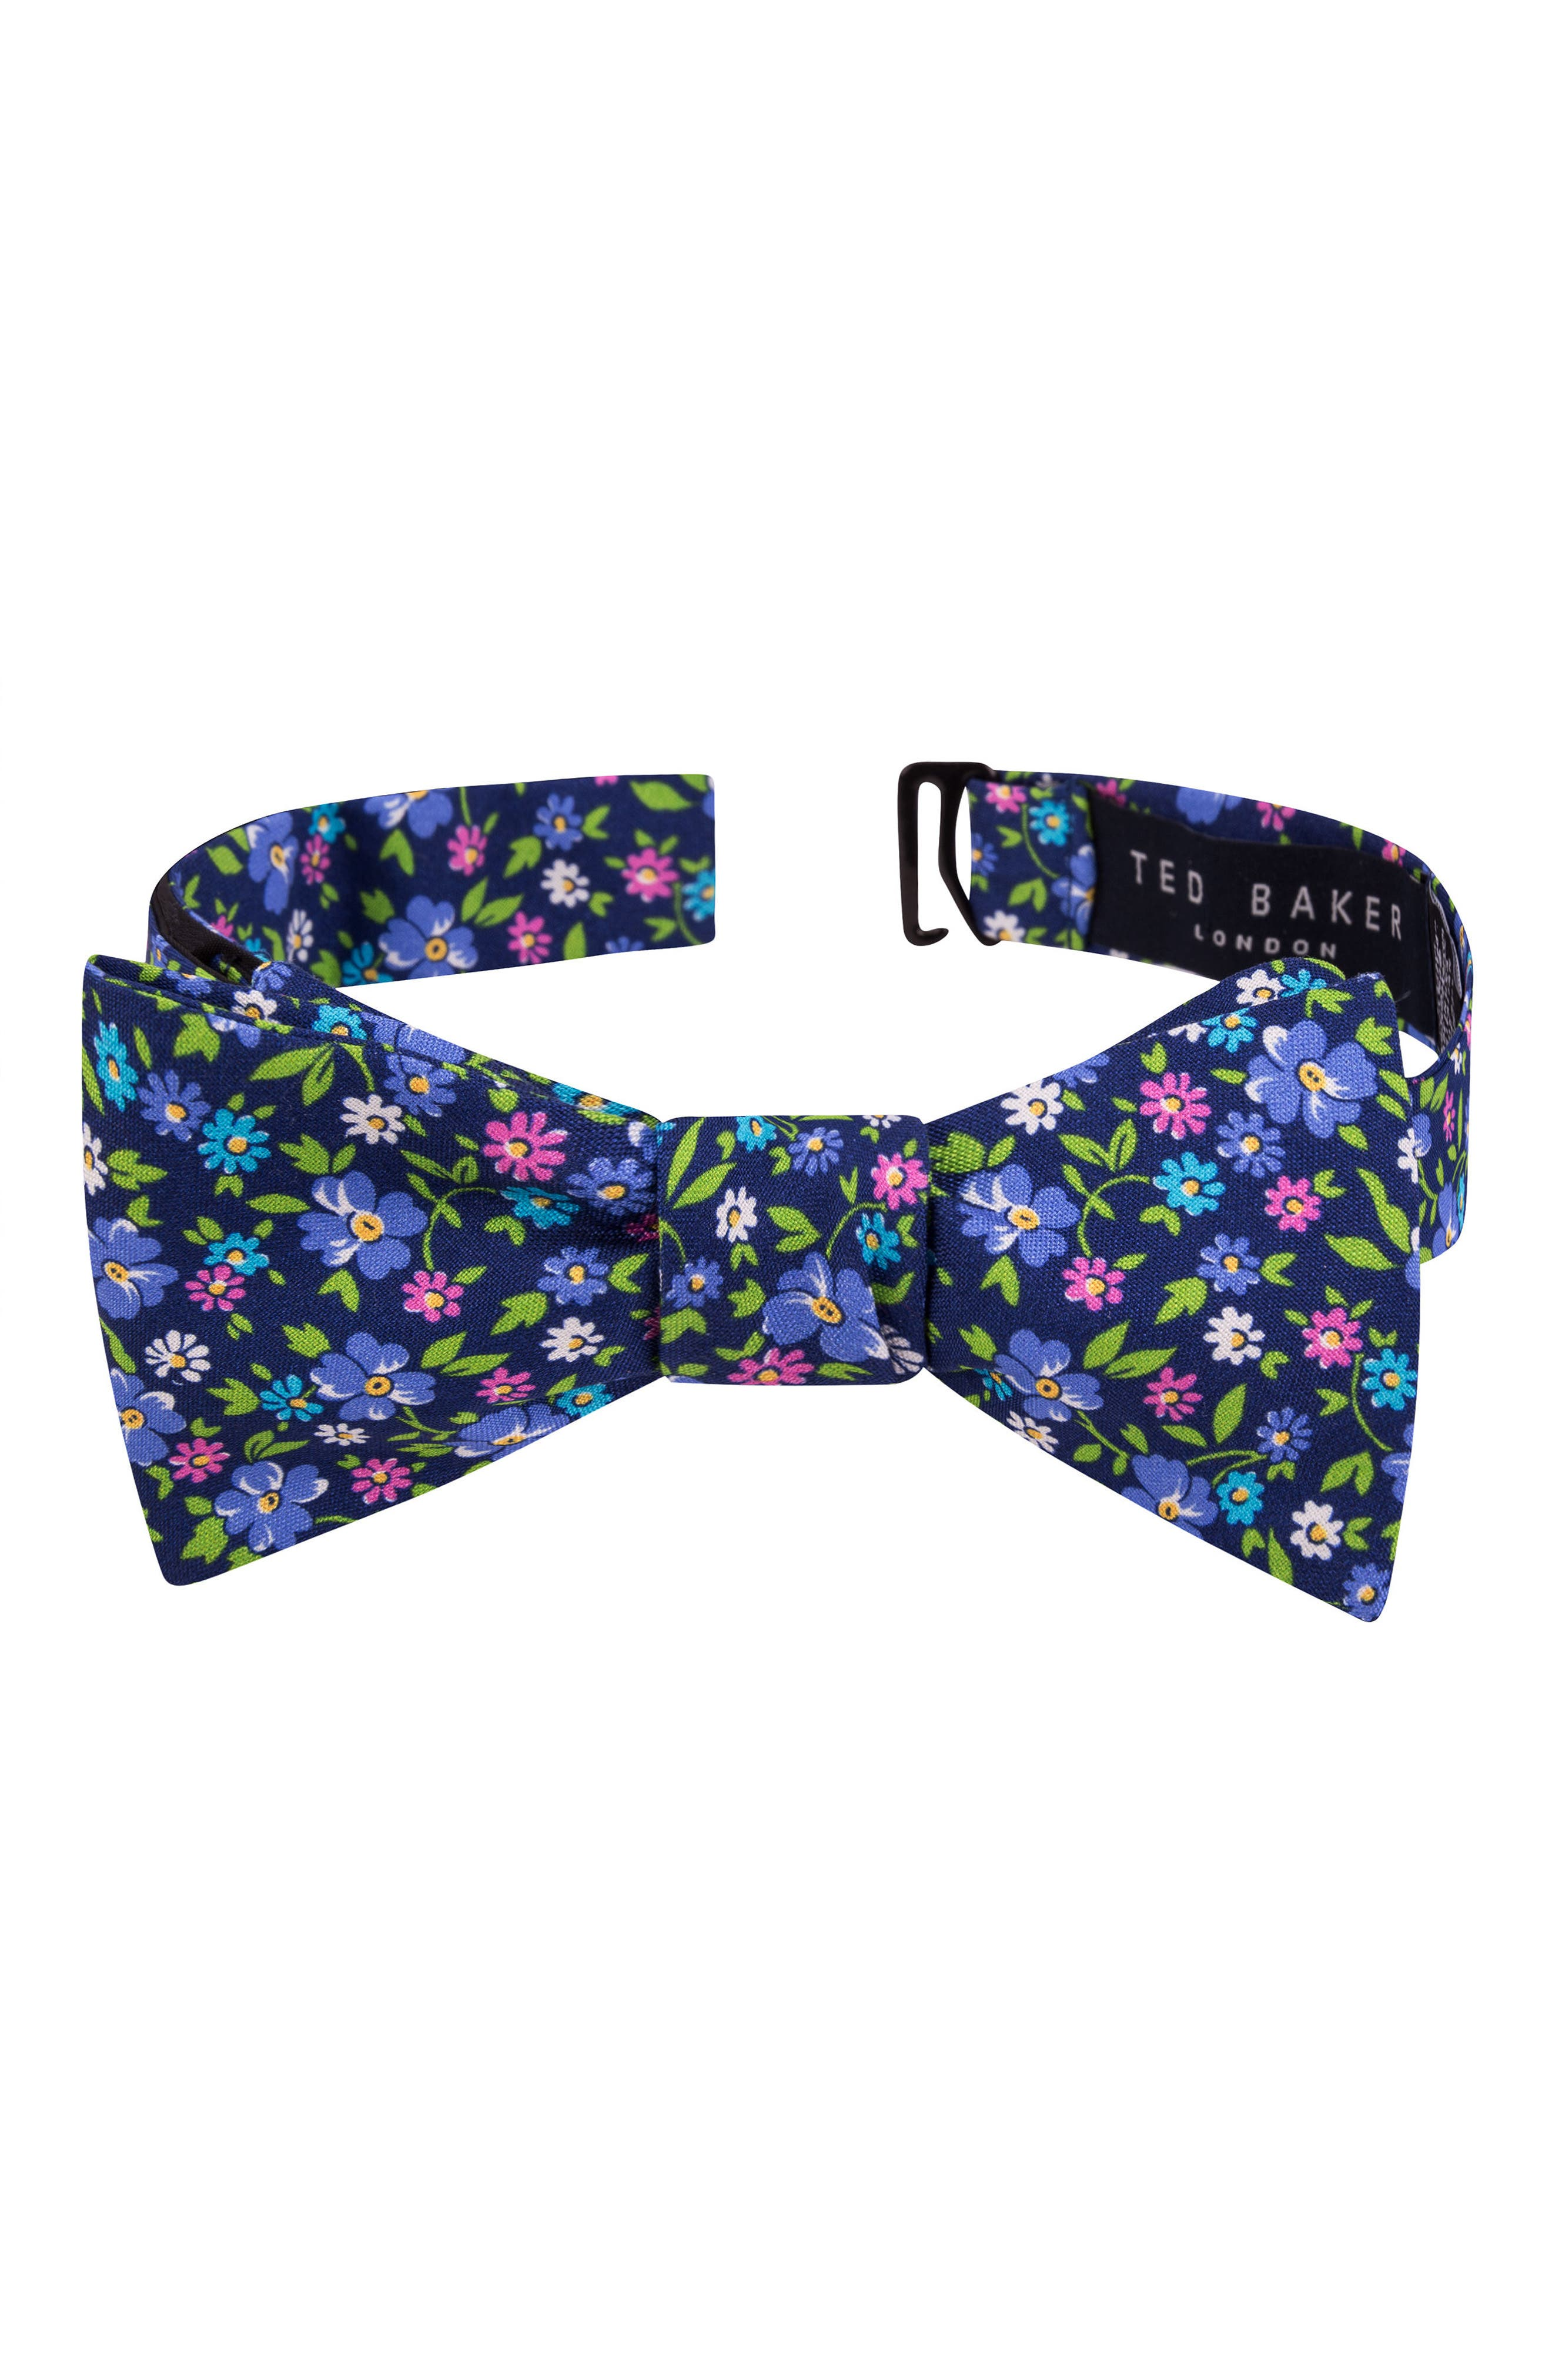 Main Image - Ted Baker London Floral Silk Bow Tie